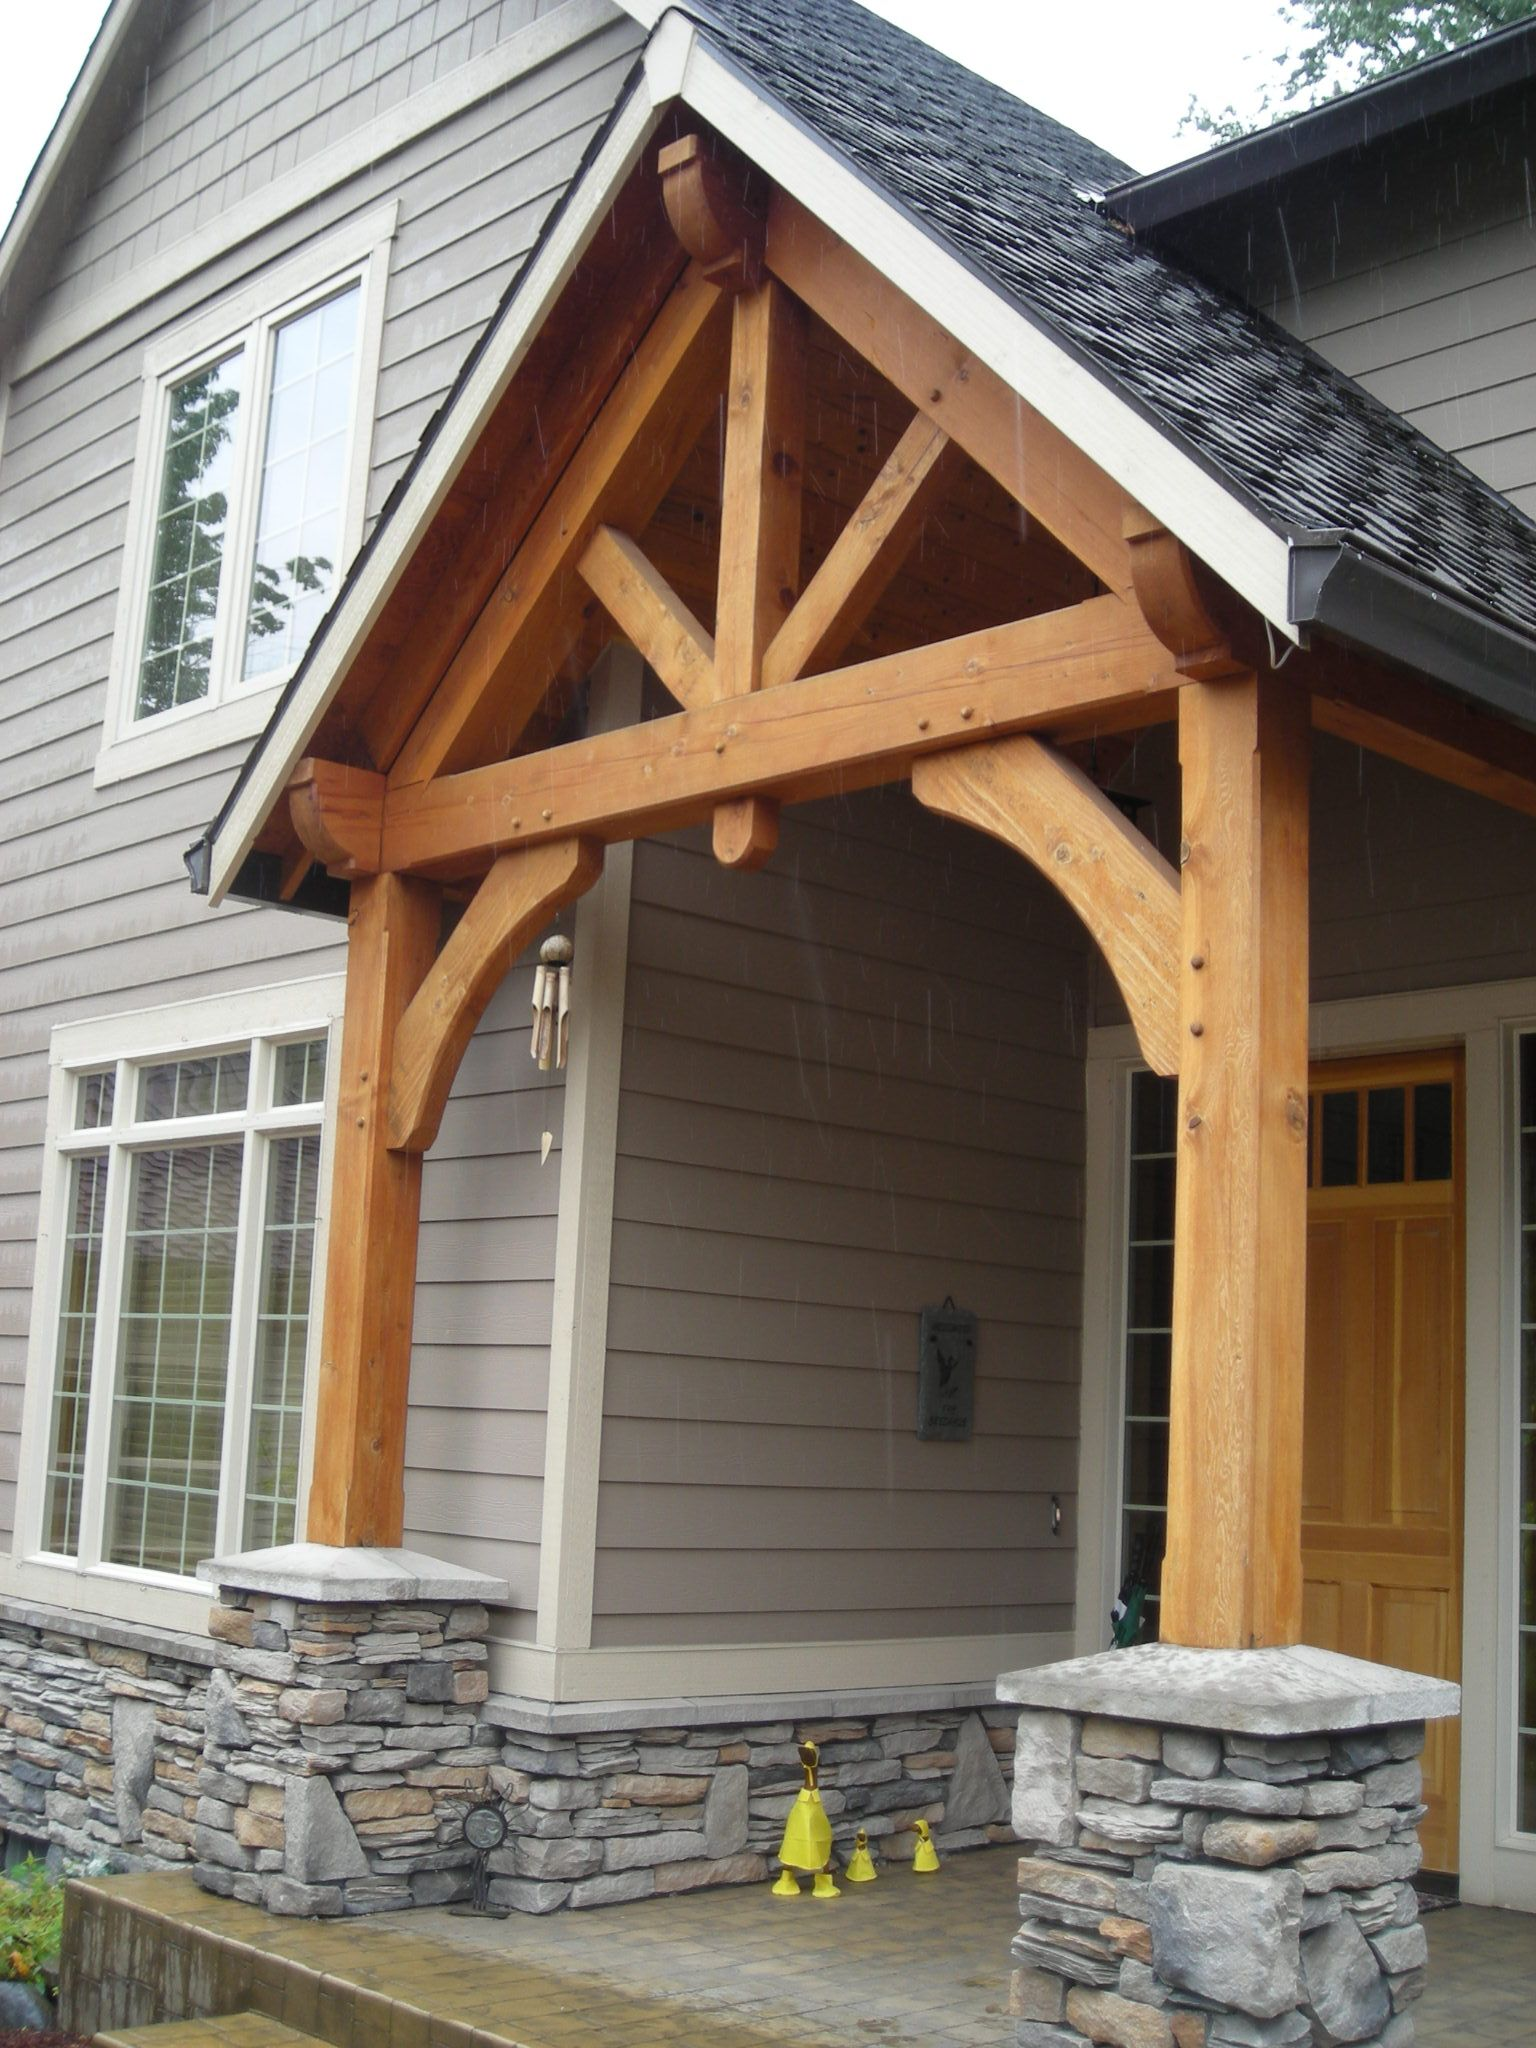 Timber frame entry timber frame entry pinterest for How to build a timber frame house